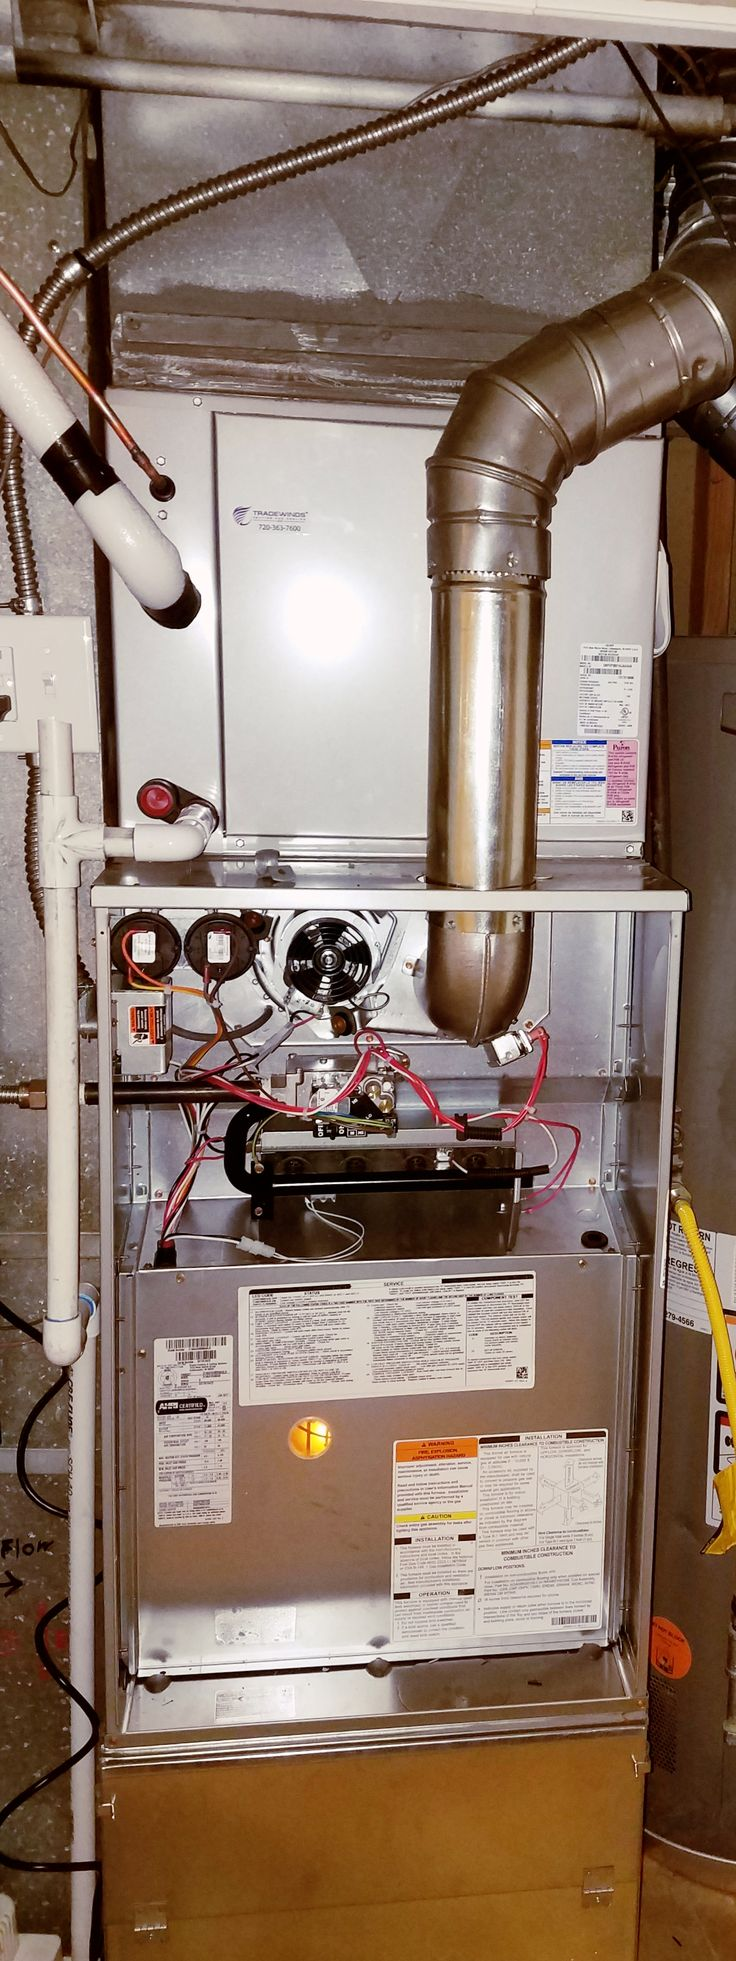 Furnace Installed by Tradewinds Heating and Cooling, Inc. in Wheat Ridge Colorado! Call at 720-363-7600 for an estimate.